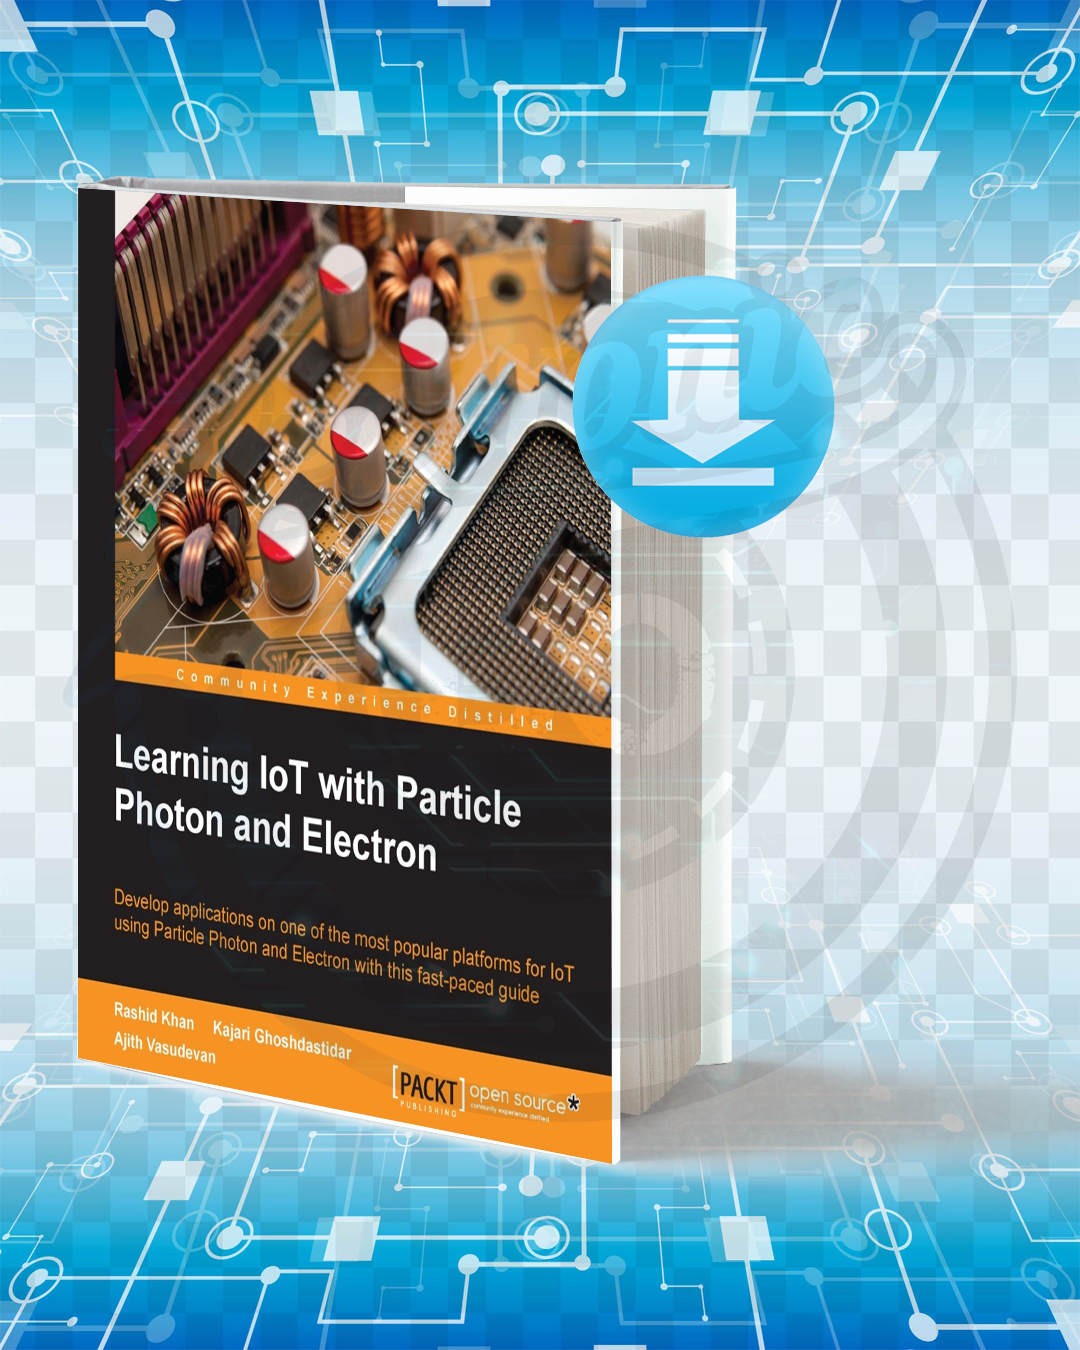 Free Book Learning IoT with Particle Photon and Electron pdf.